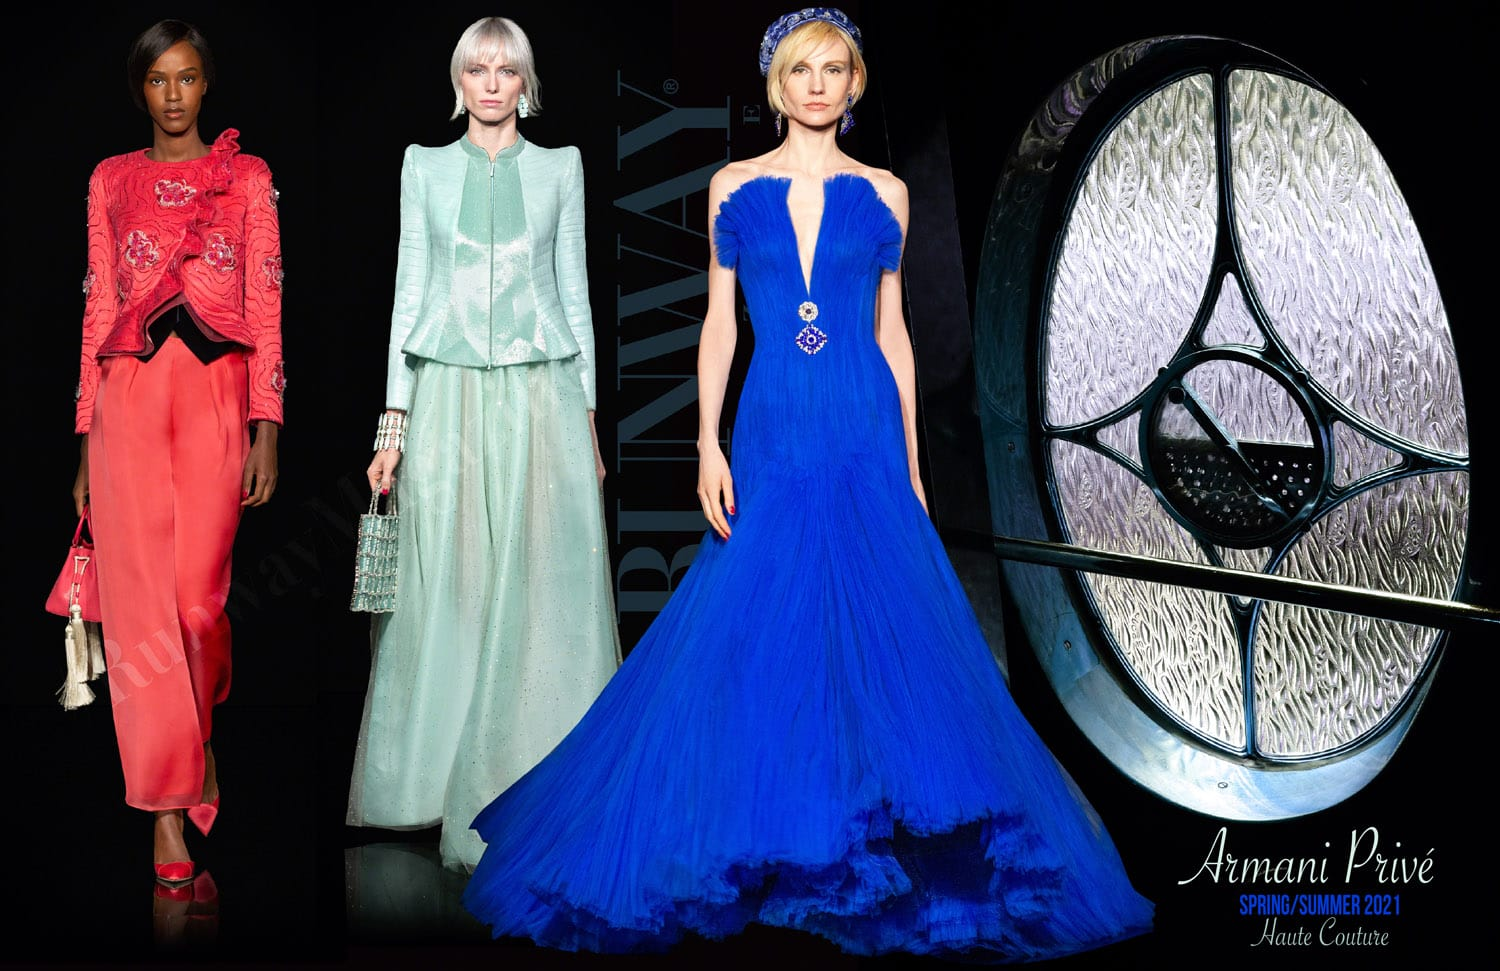 Armani Prive HAUTE COUTURE Spring Summer 2021 by RUNWAY MAGAZINE